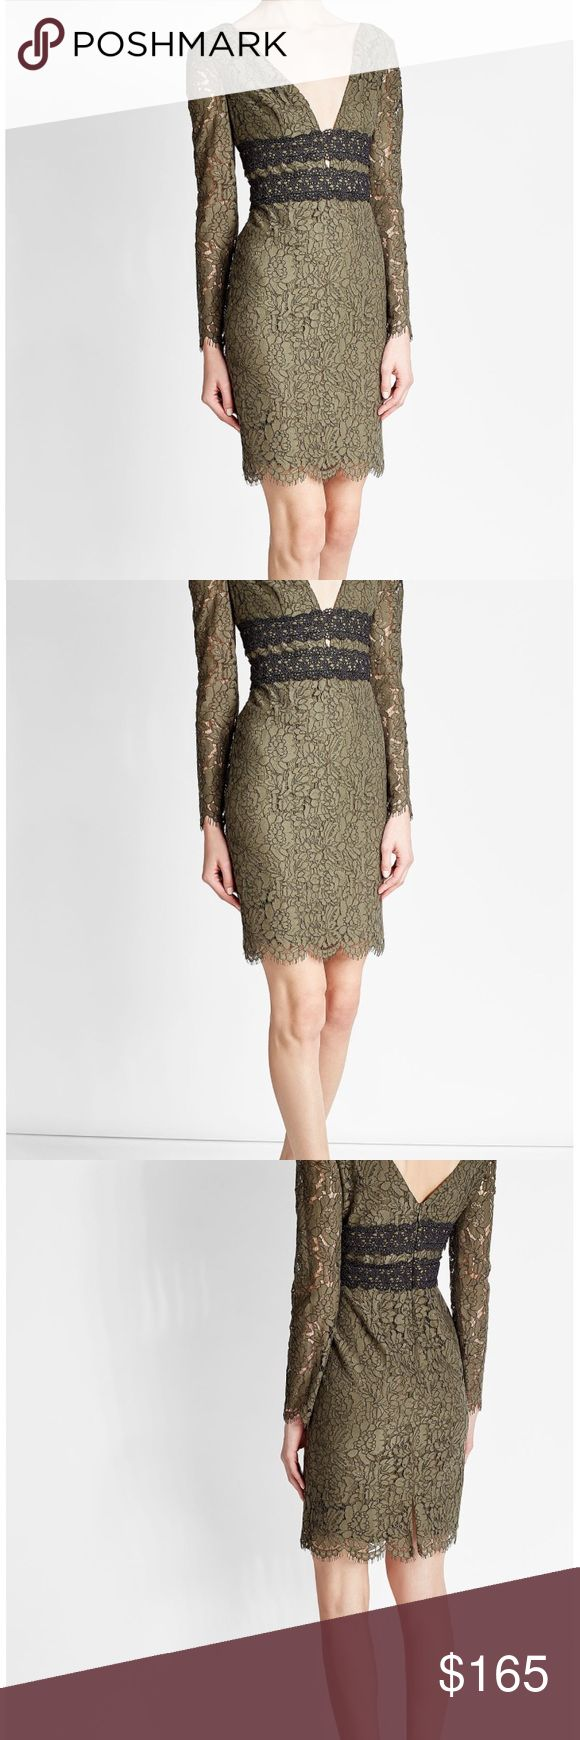 Diane Von Furstenberg  V-Neck Long Sleeves Dress Diane Von Furstenberg Viera Double V-Neck Long Sleeves Lace Dress NWT Sz 10 $498.    An unusual shade of khaki green and an intricate embroidery-style lace make this fitted dress a flattering investment from Diane von Furstenberg. Panels in contrast black add definition. MATERIAL & CARE  35% Cotton, 34% Polyamide, 31% Viscose Dry clean  *Color may be slightly different from the picture as camera and lighting can effect photo* Diane Von…